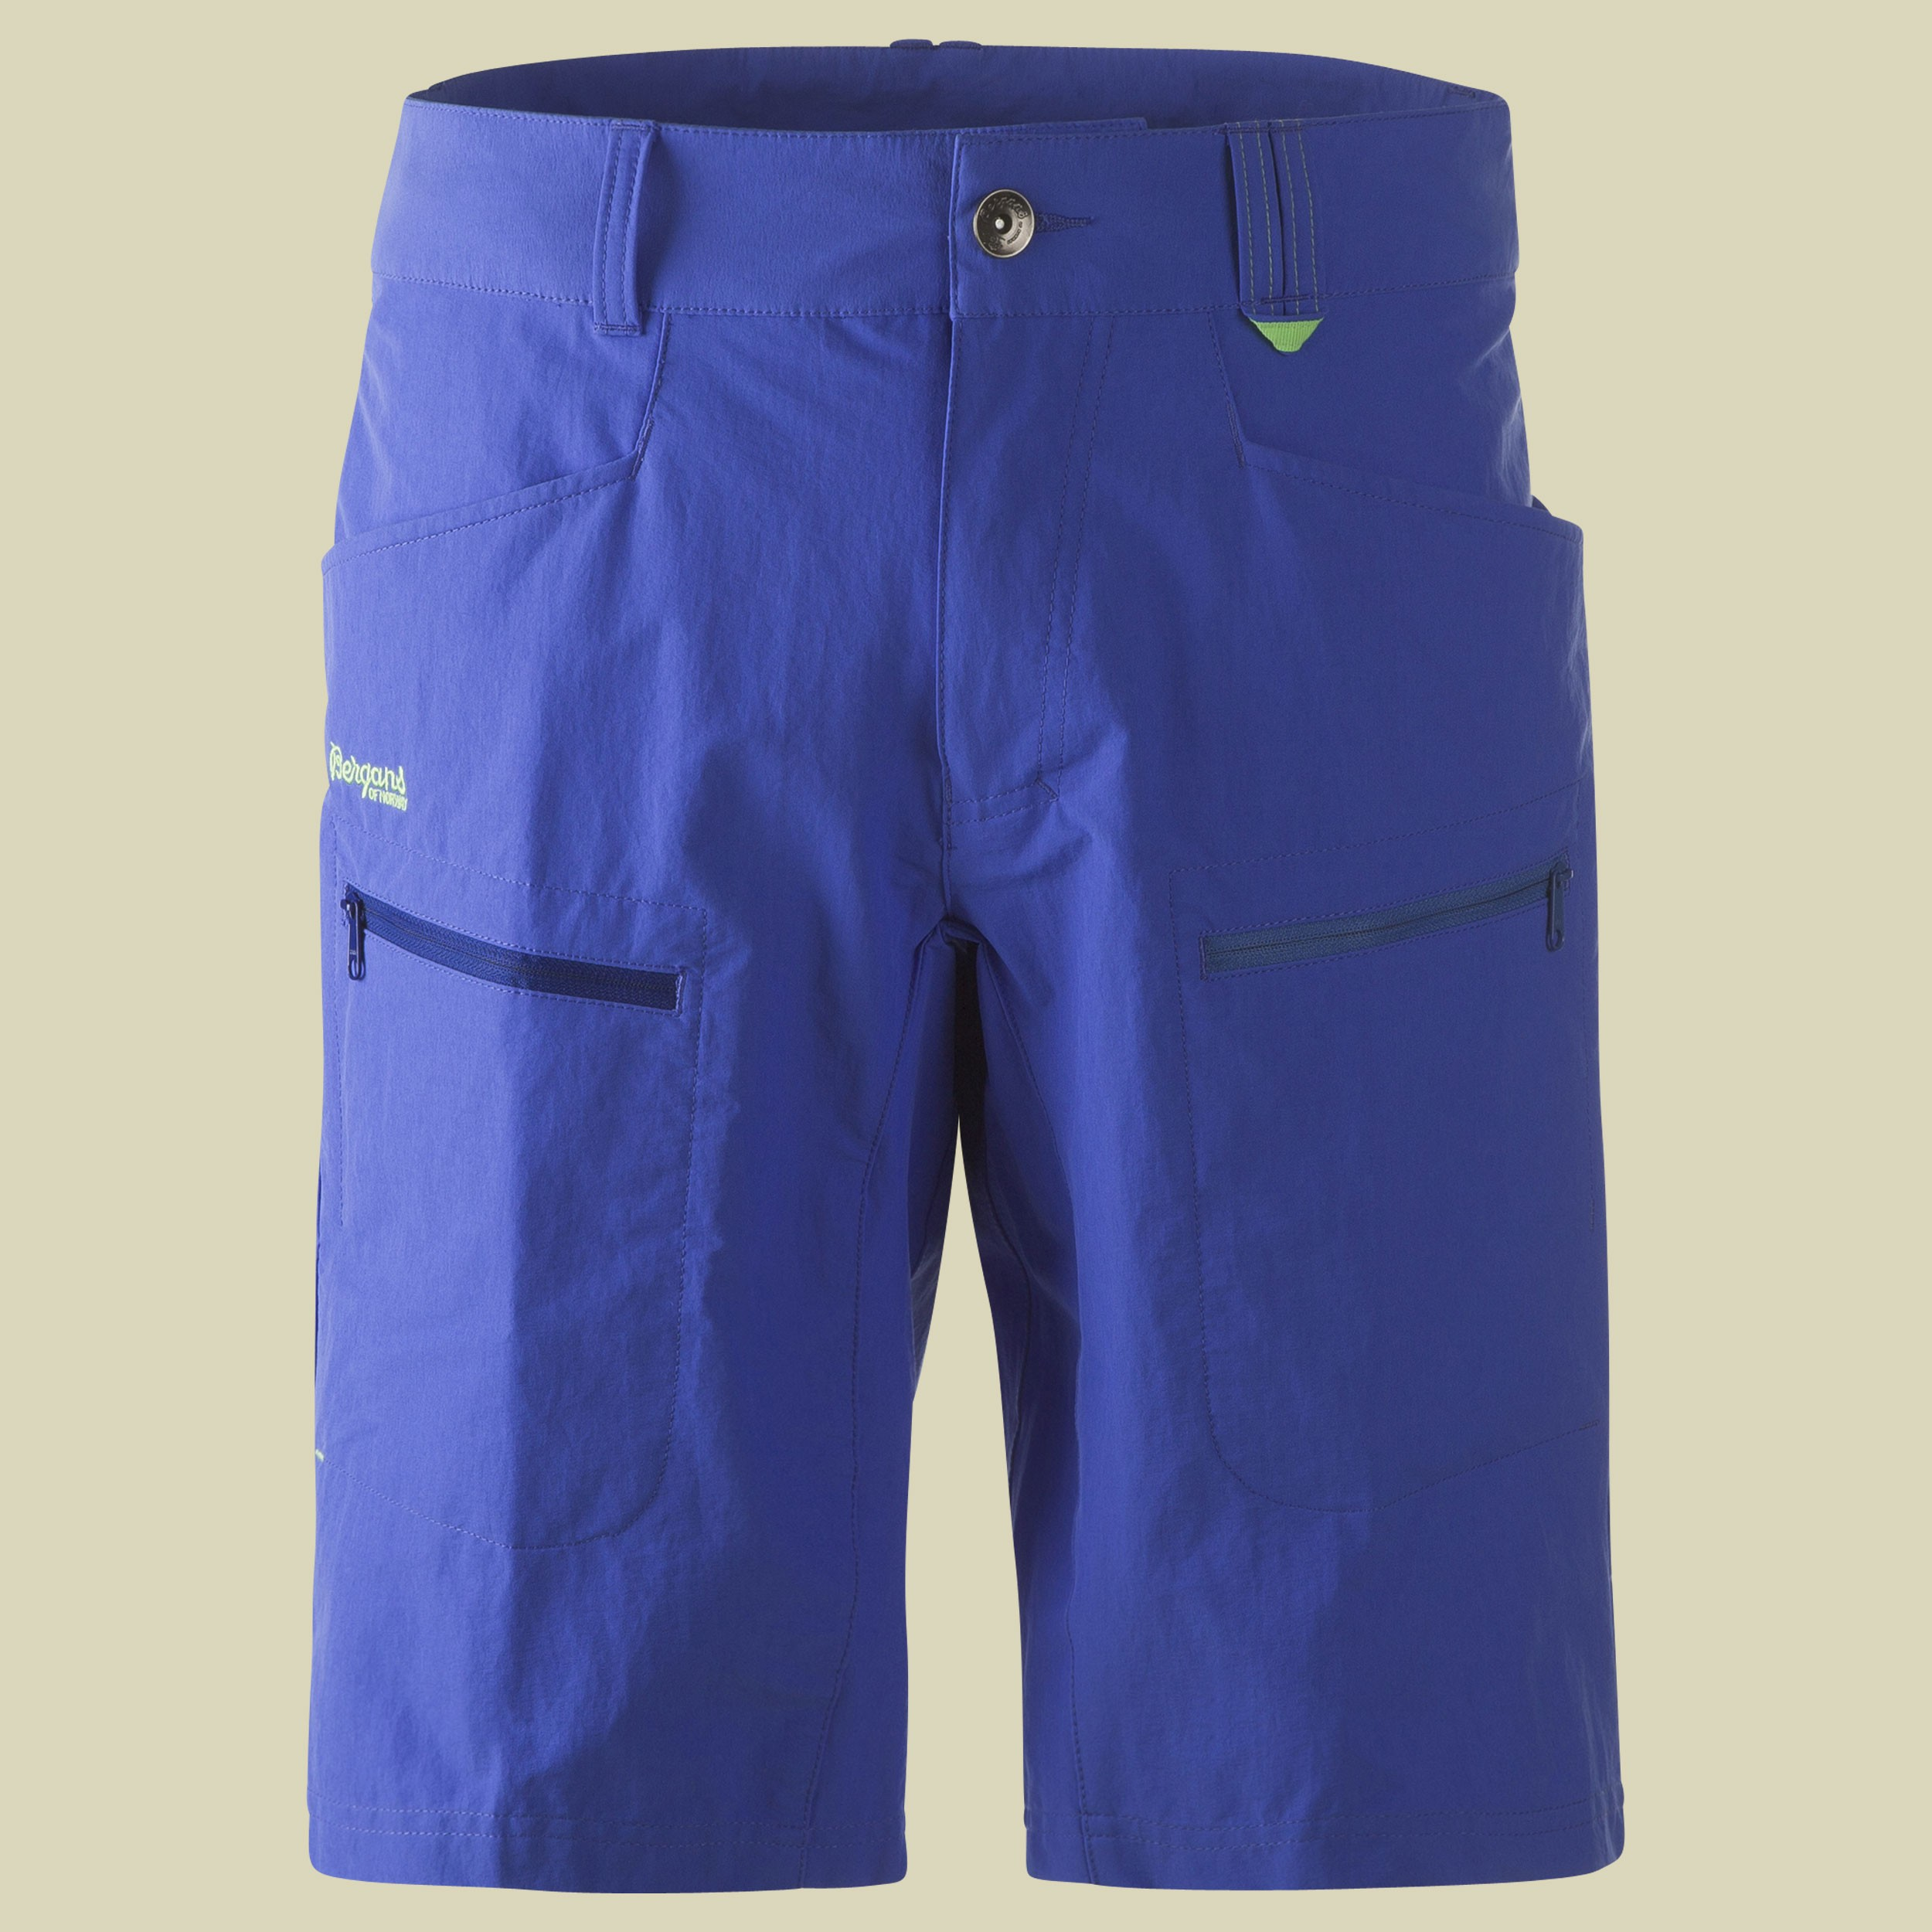 Utne Shorts Men